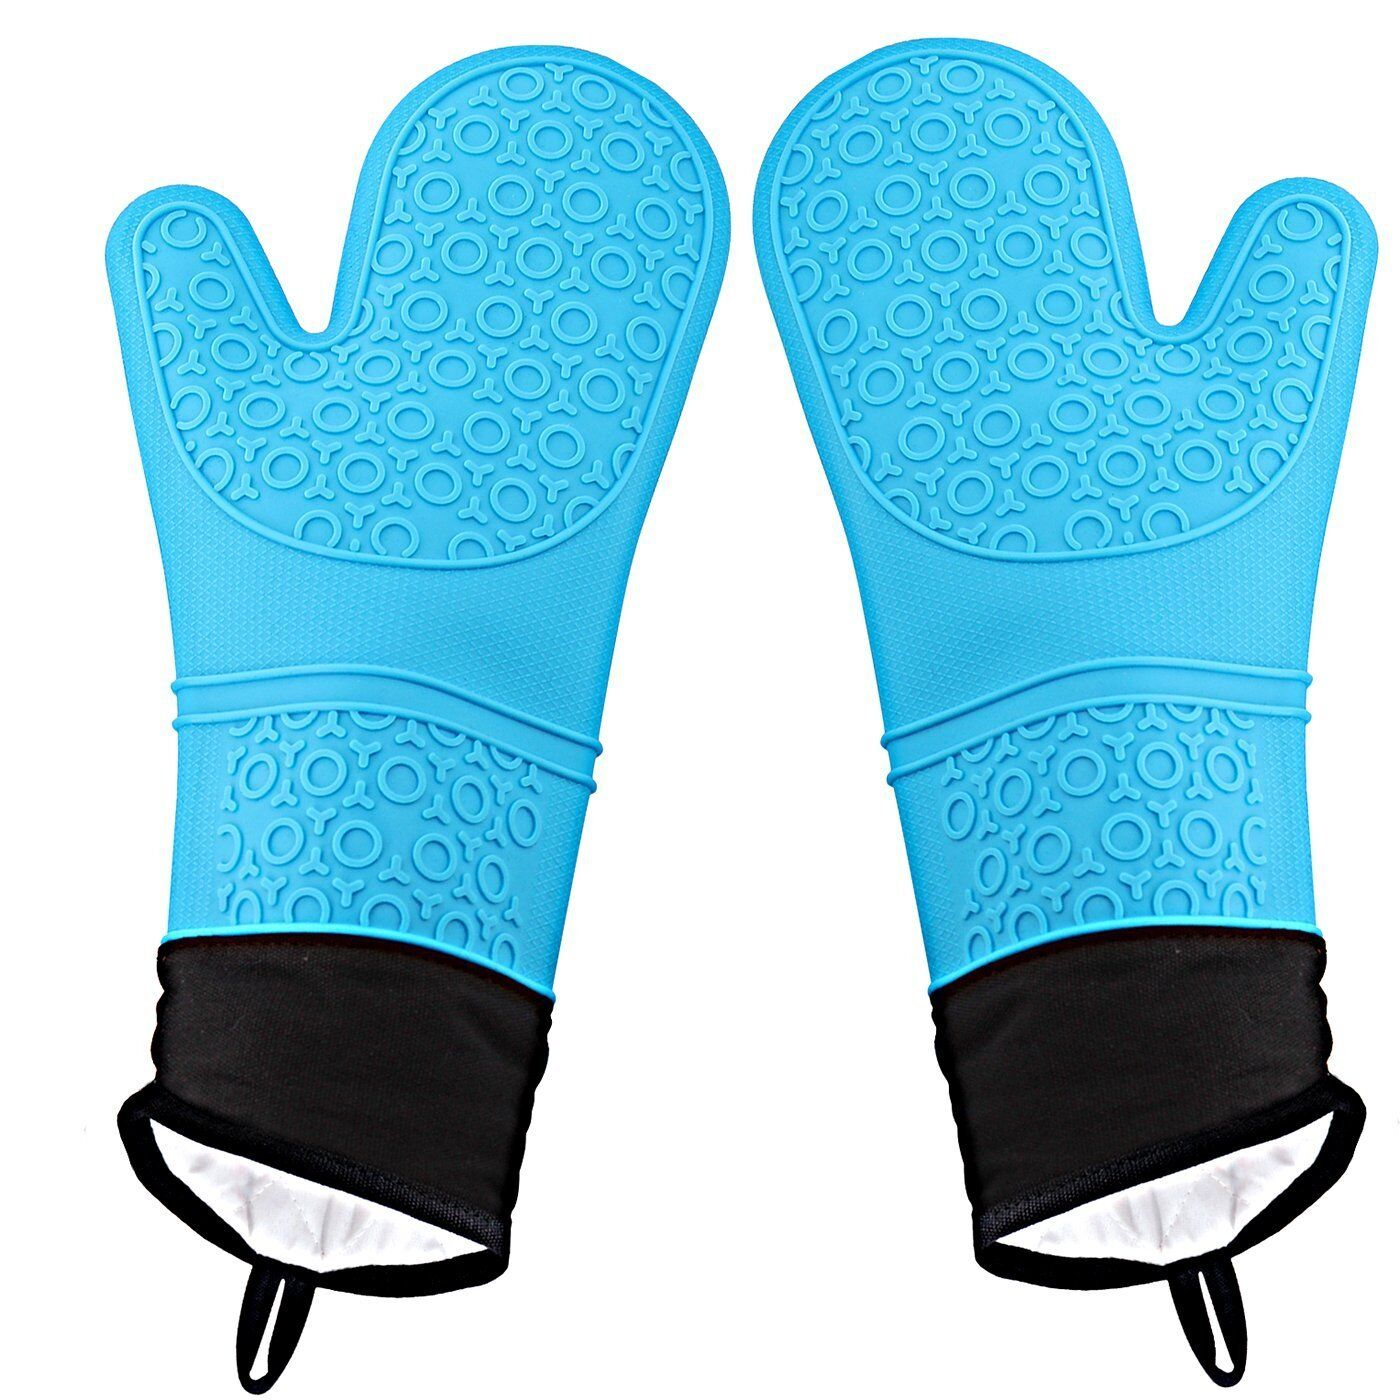 Pair Of Gloves Heat Resistant Silicone Gloves Kitchen Bbq Oven Cooking Mitts B